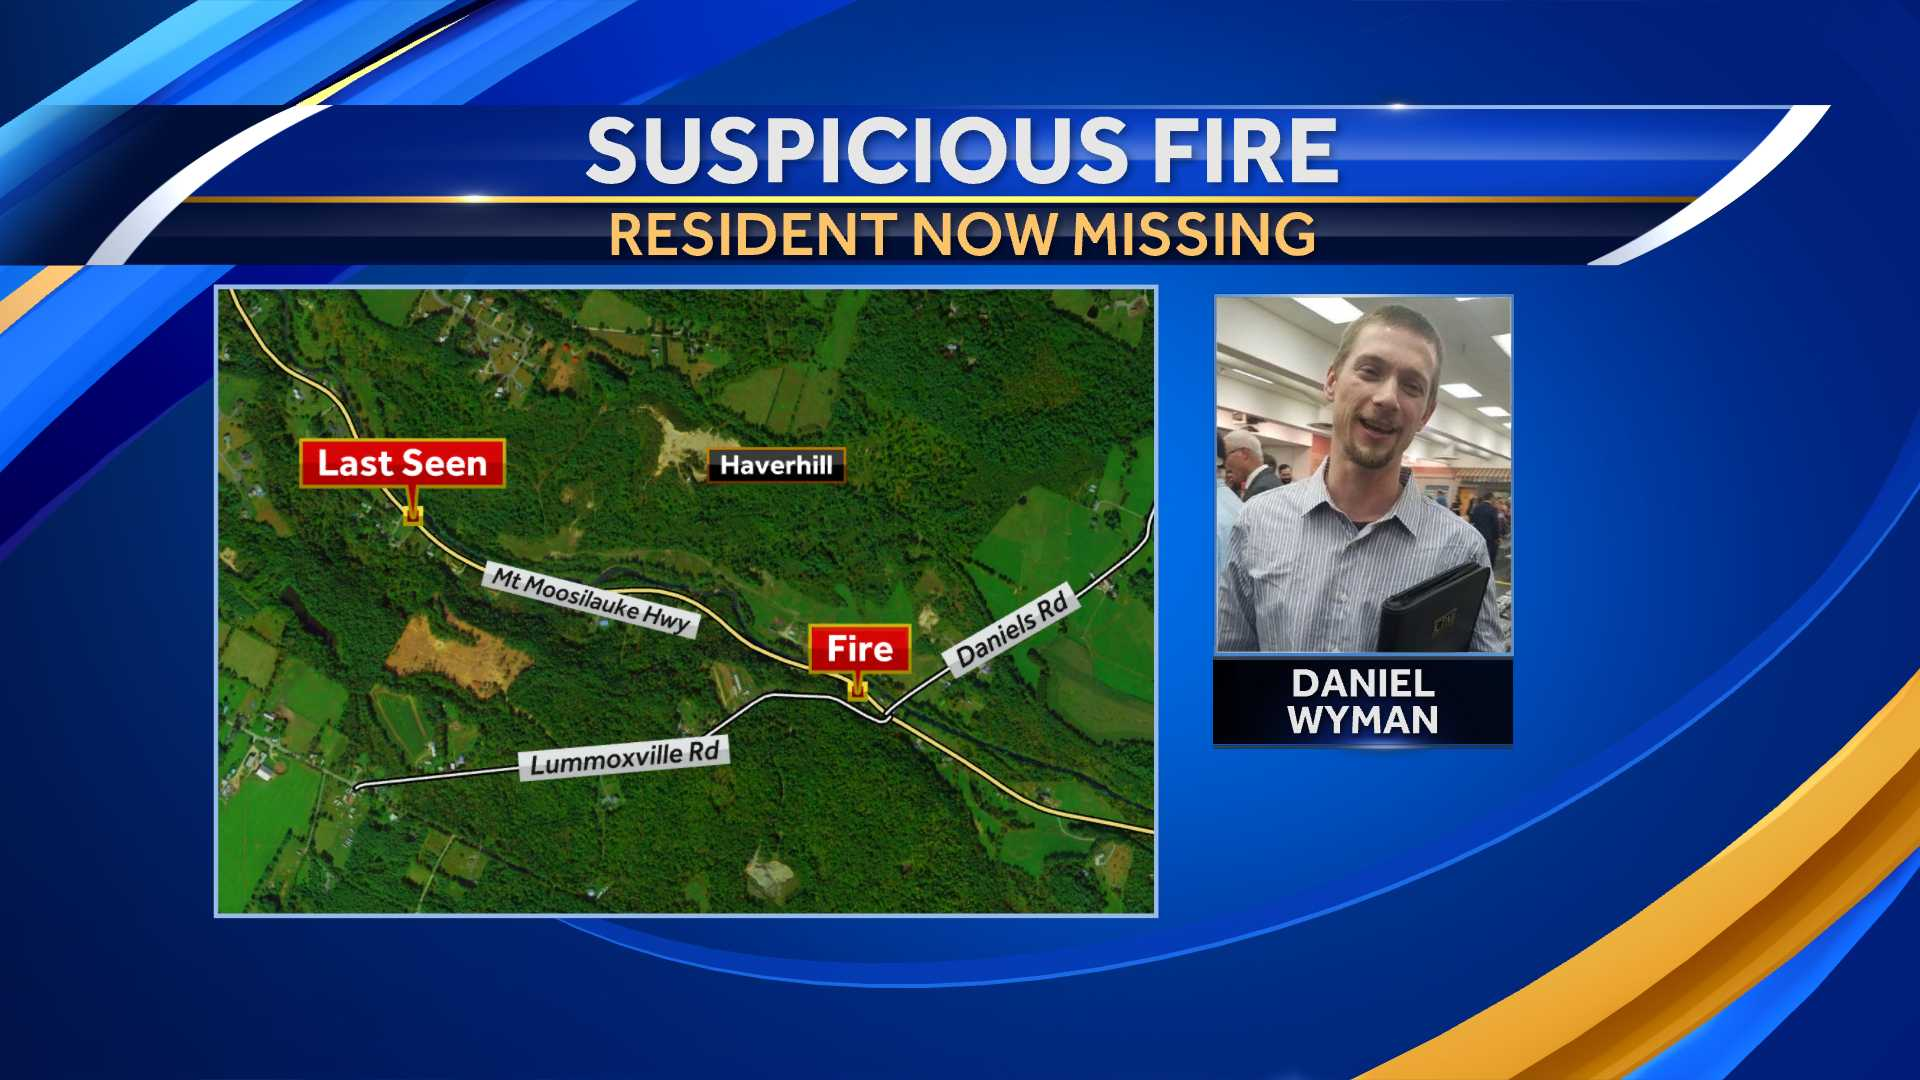 Man missing following suspicious fire, officials say